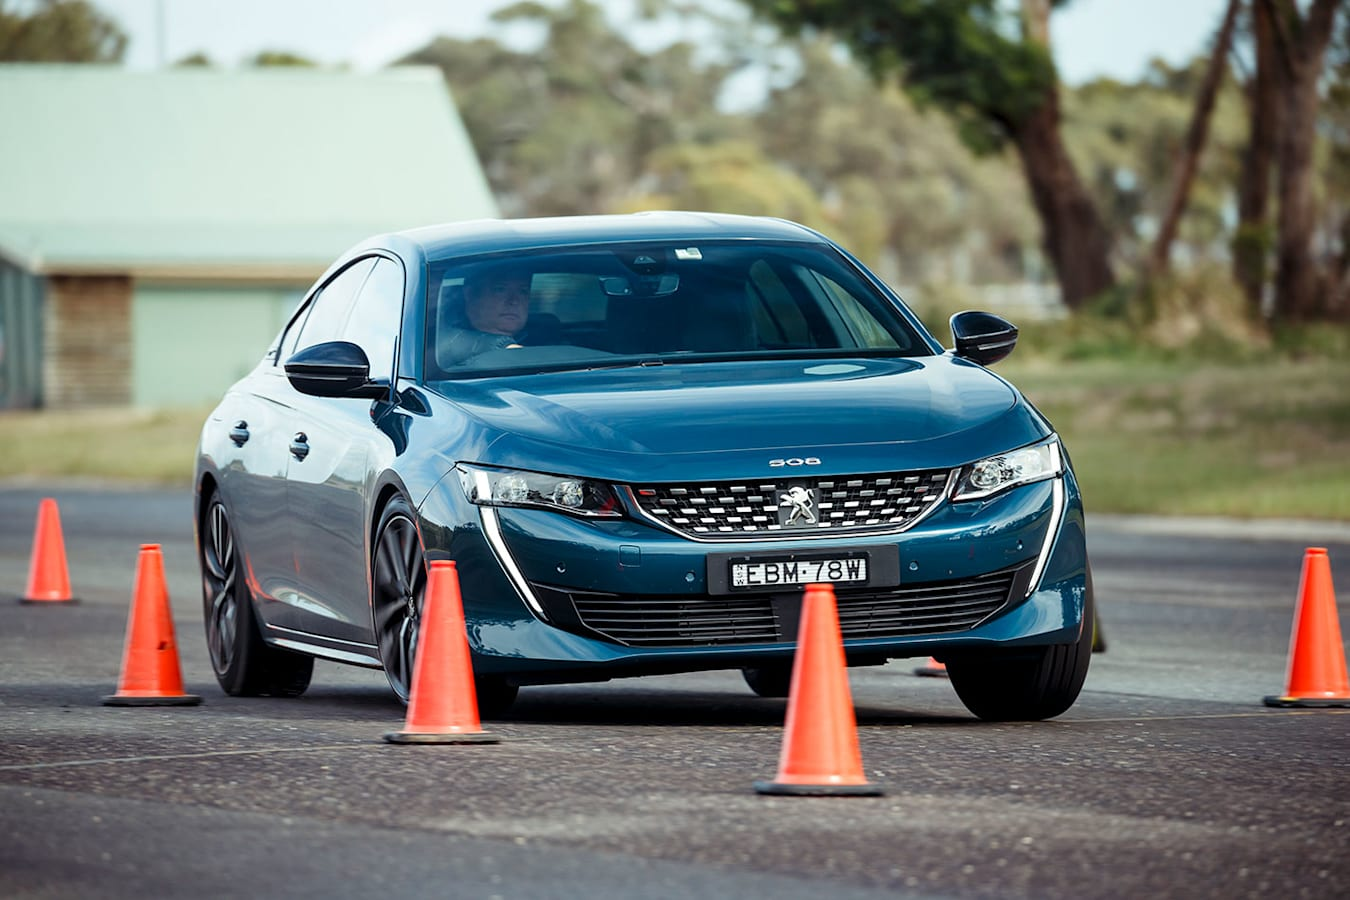 2019 Peugeot 508 - 2020 COTY contender